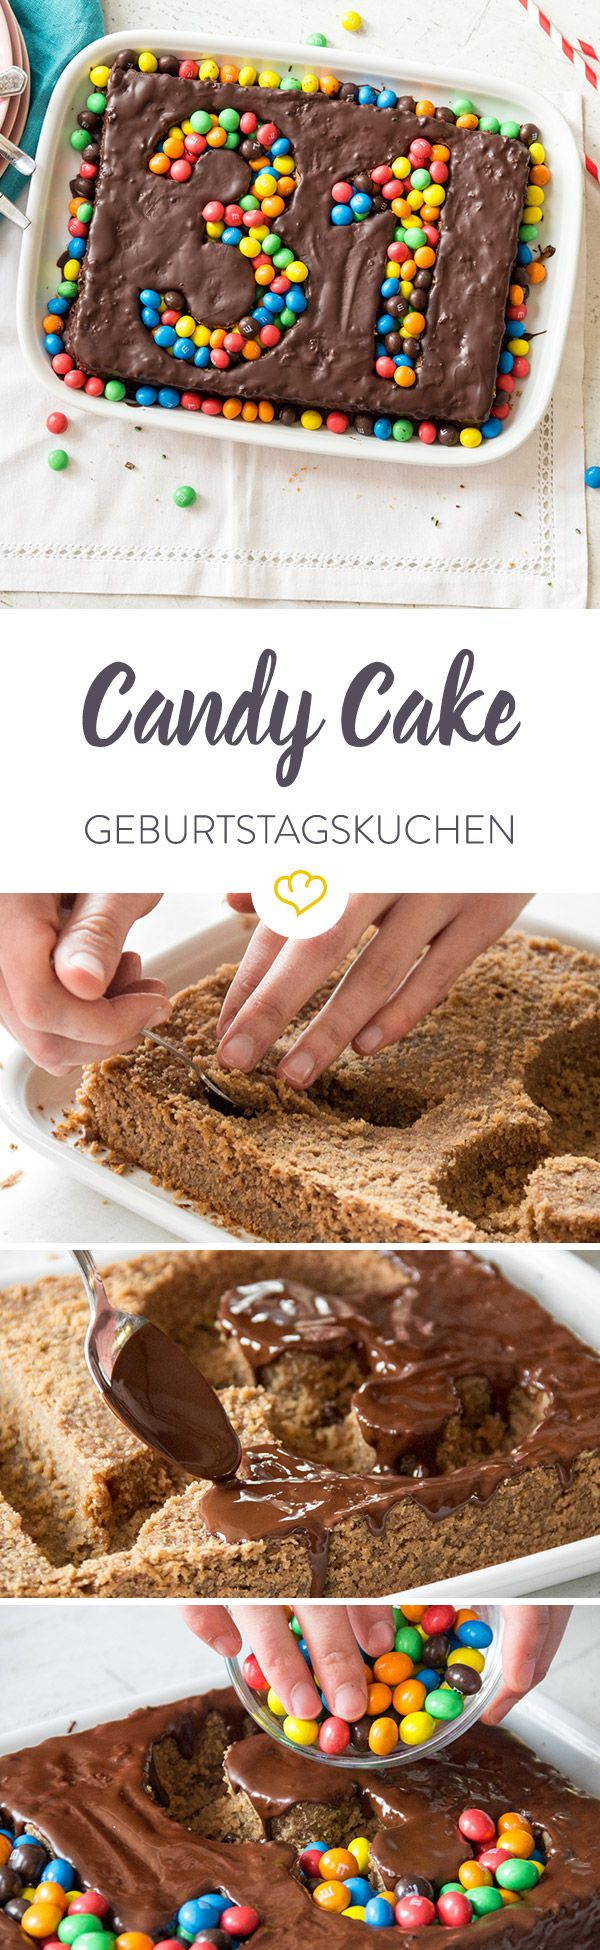 Die Frage nach dem Alter – passé! Happy-Birthday-Kuchen – Backe, Backe Kuchen